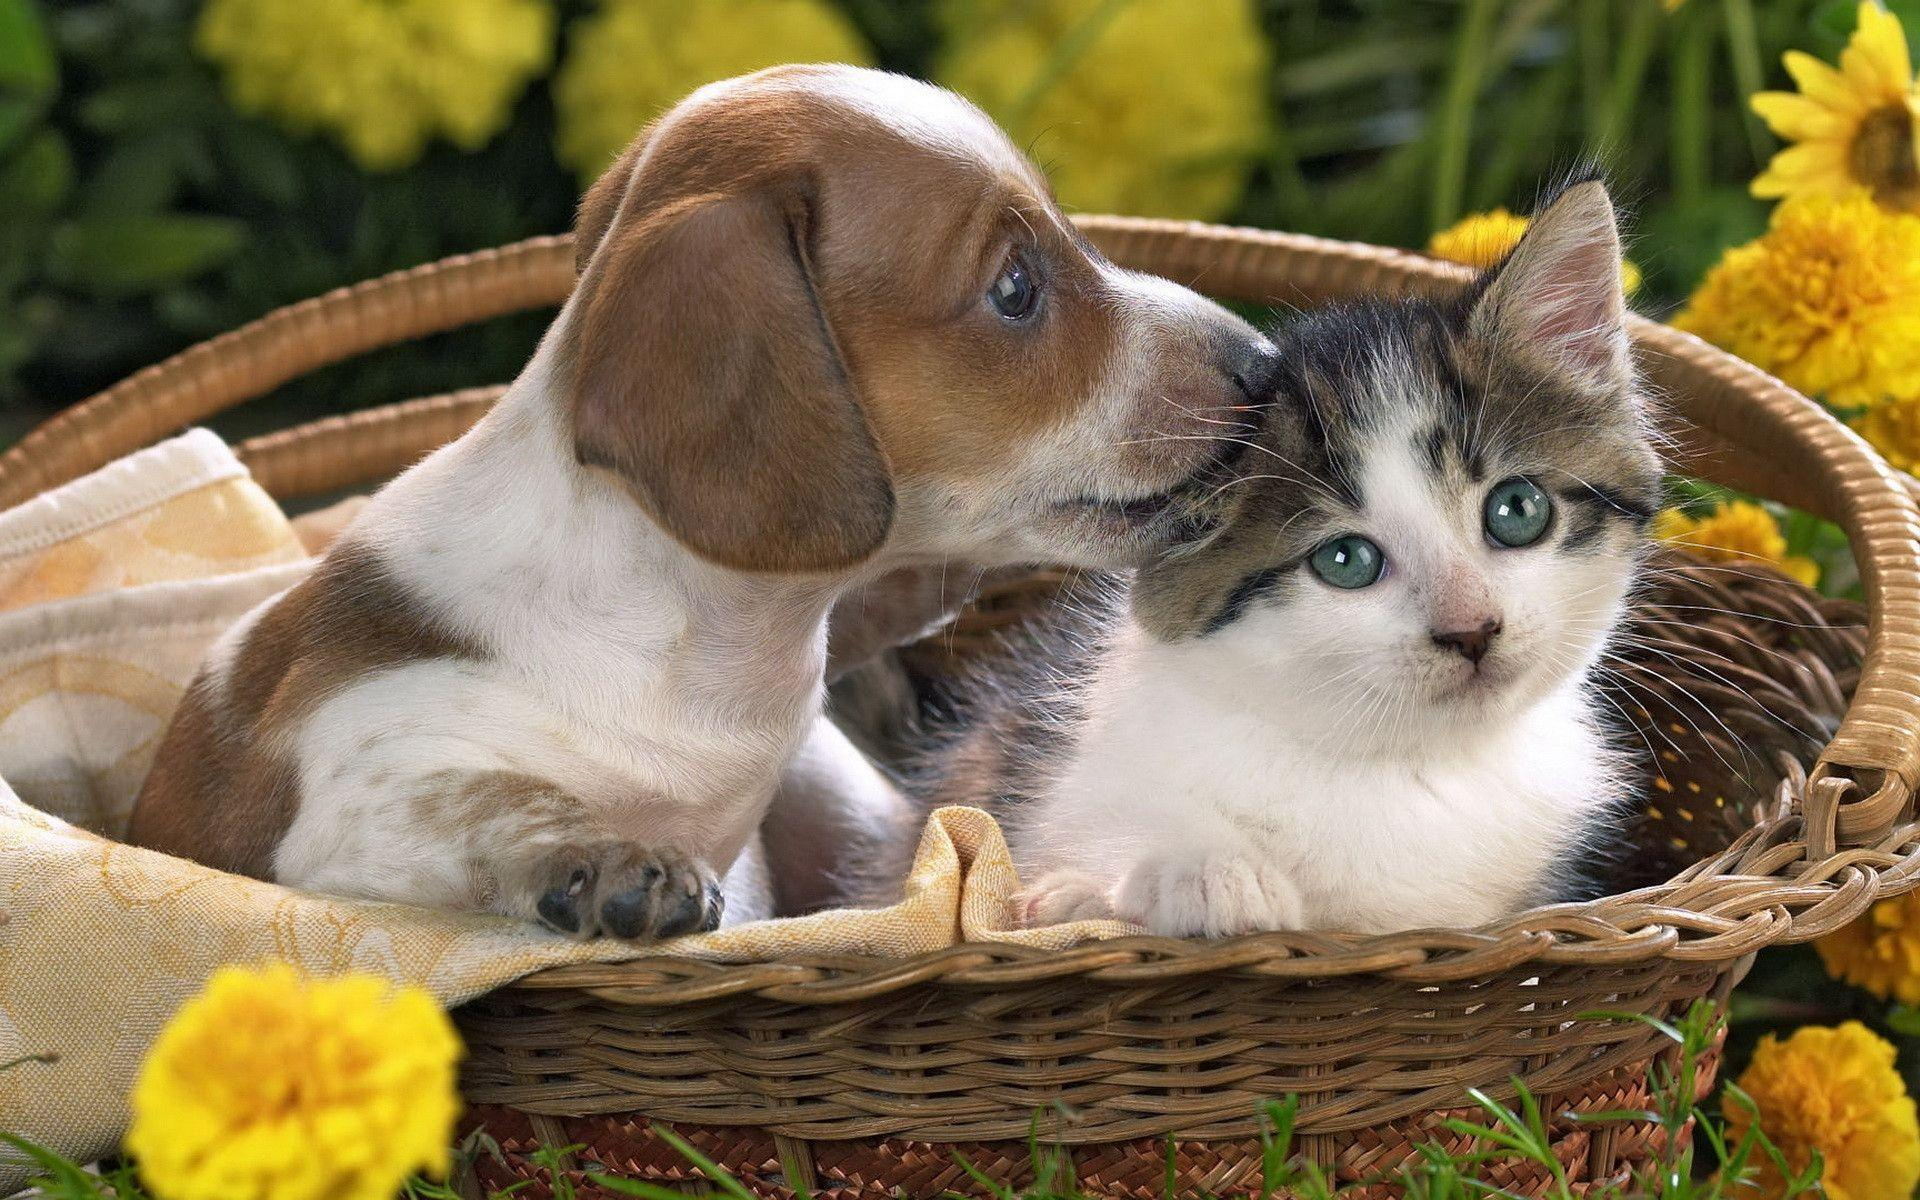 Puppy and kitten wallpapers and image